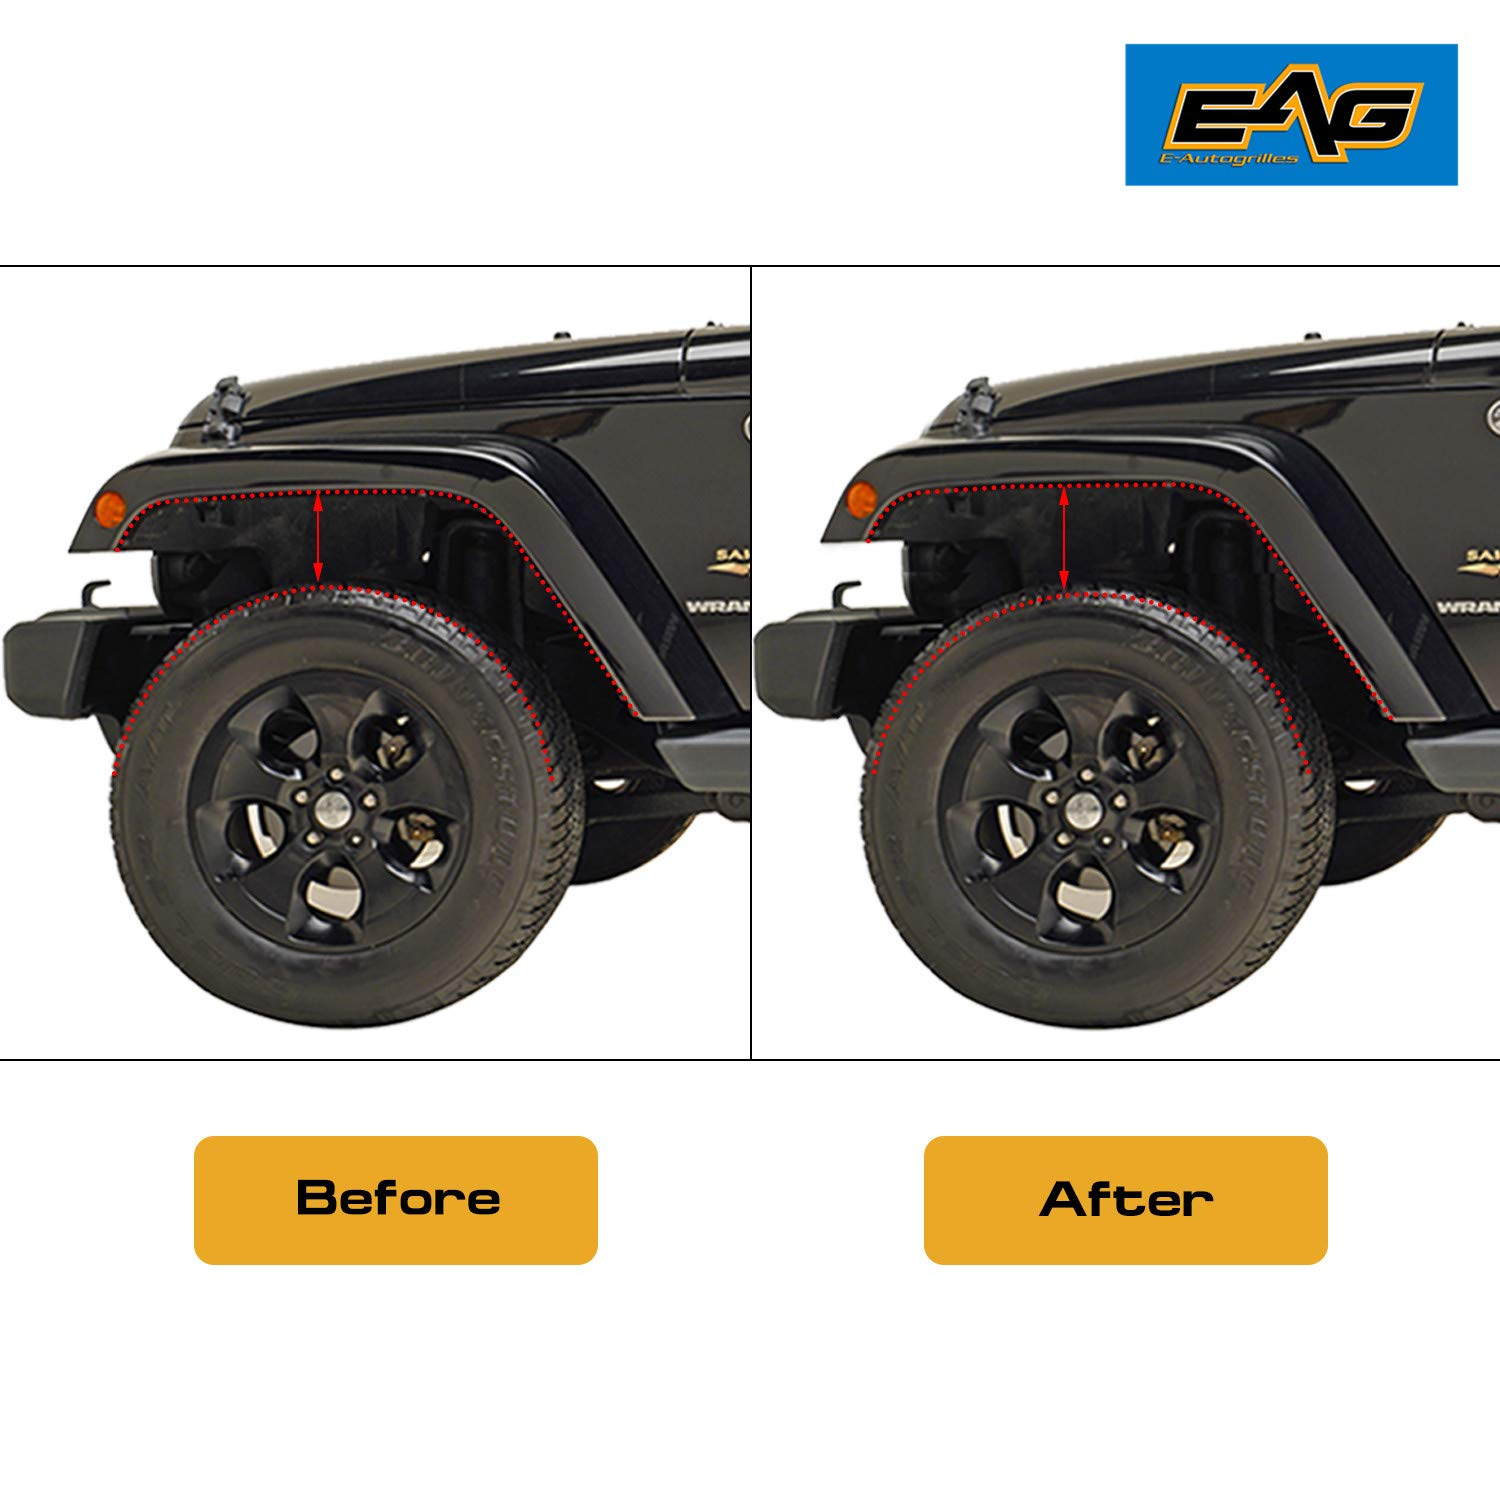 EAG 1.5 inch Front Leveling Lift Kit Spacer Raise Suspension Fit for 07-18 Jeep Wrangler JK